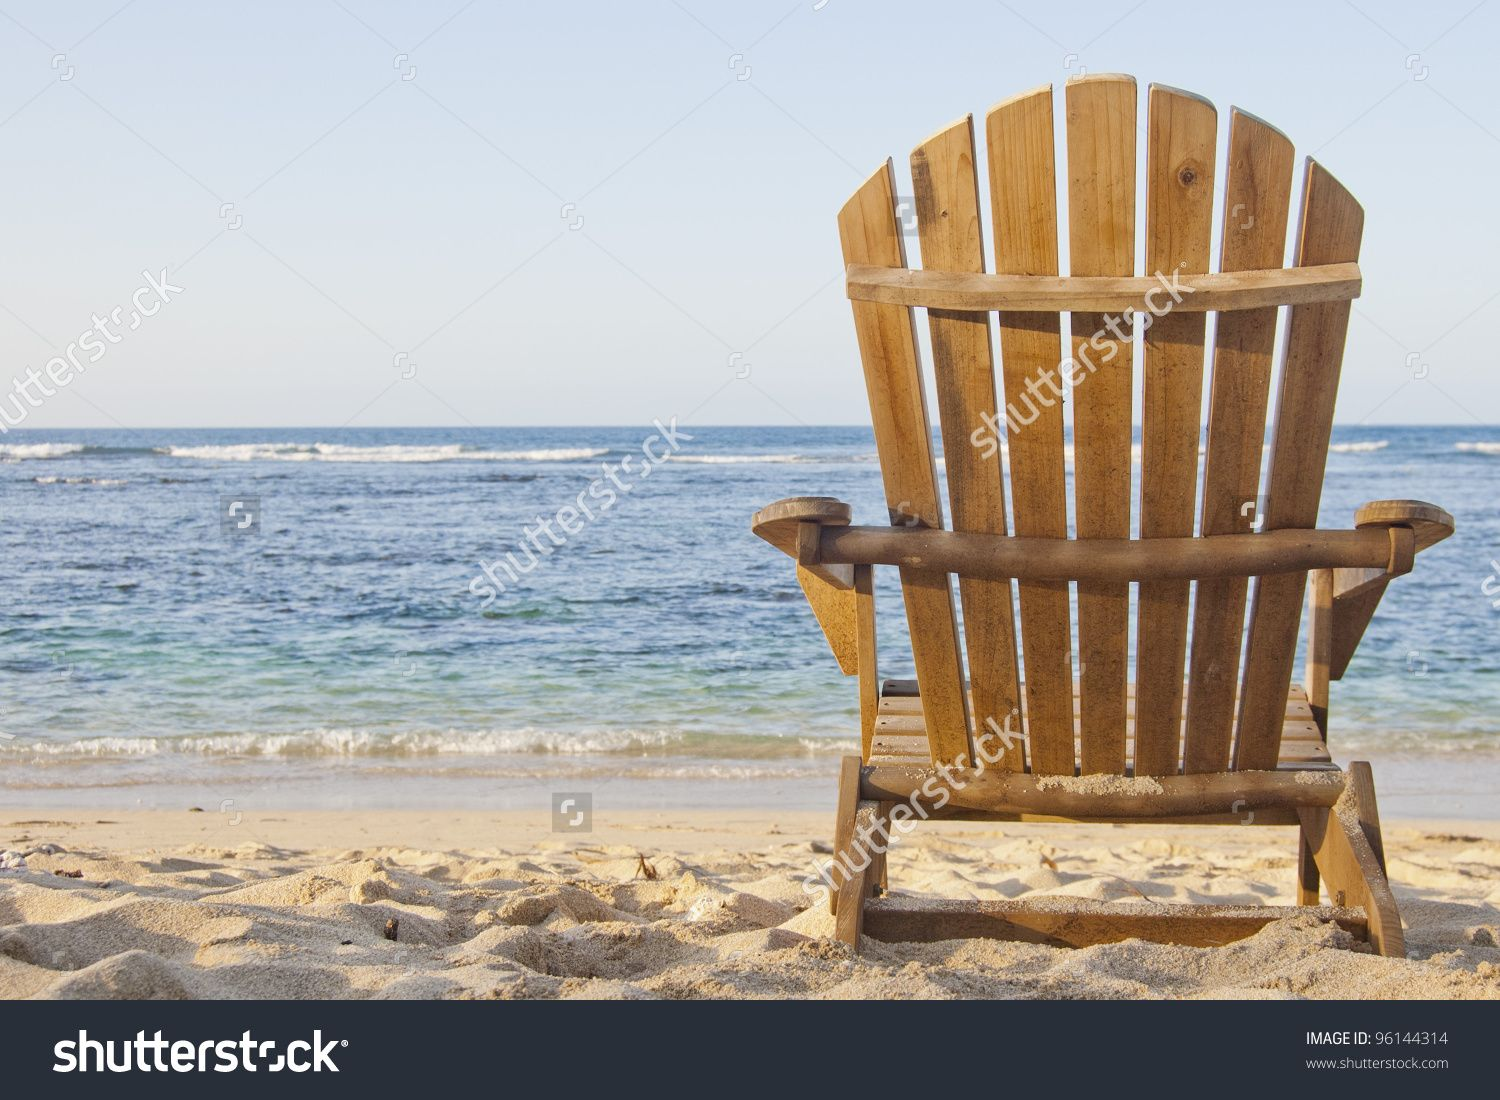 Beach Chair Adirondack Scene Stock Photo 96144314